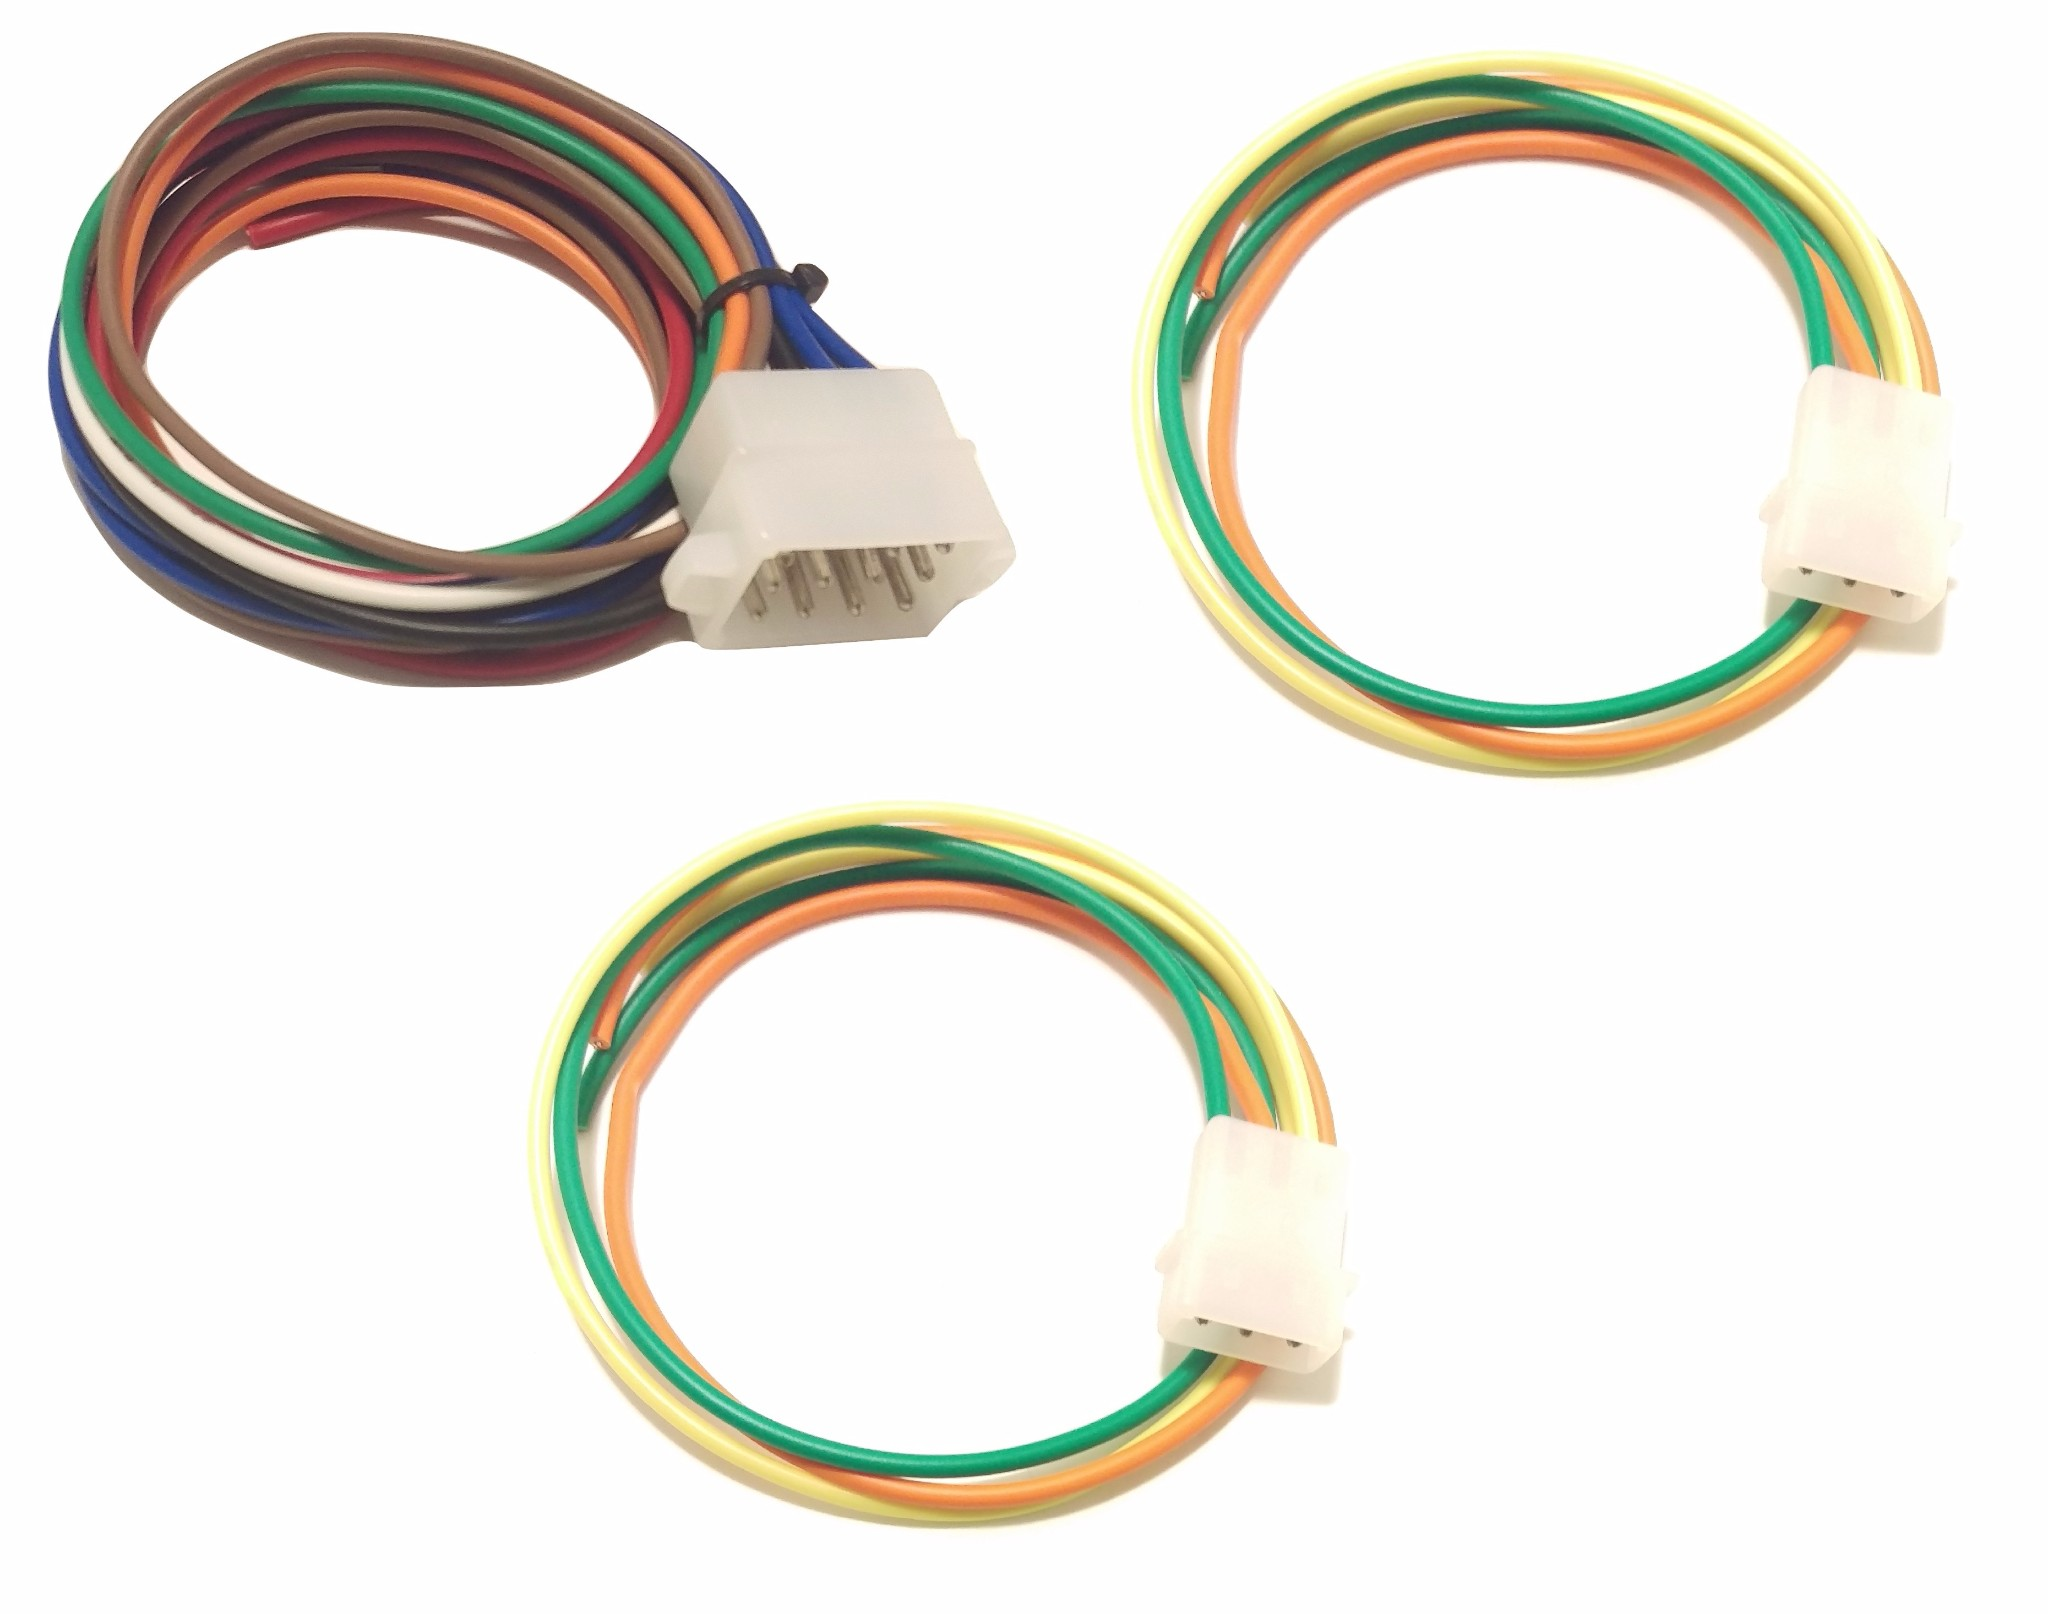 Whelen Power Harness Plug Cable 3 Pin x 2 & 12 Pin TAM83 on